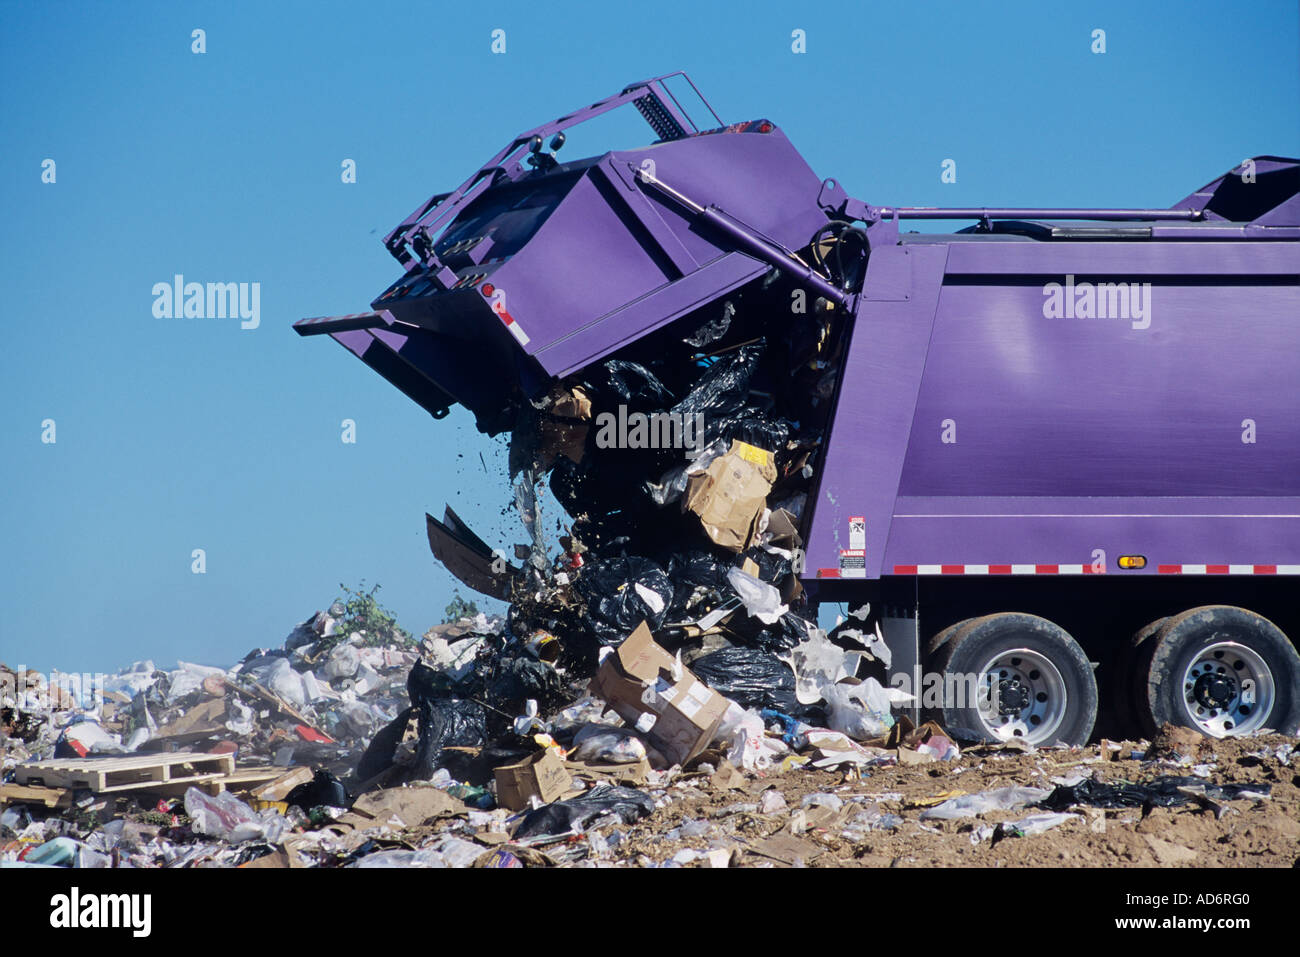 A large garbage truck dumps trash at a landfill - Stock Image